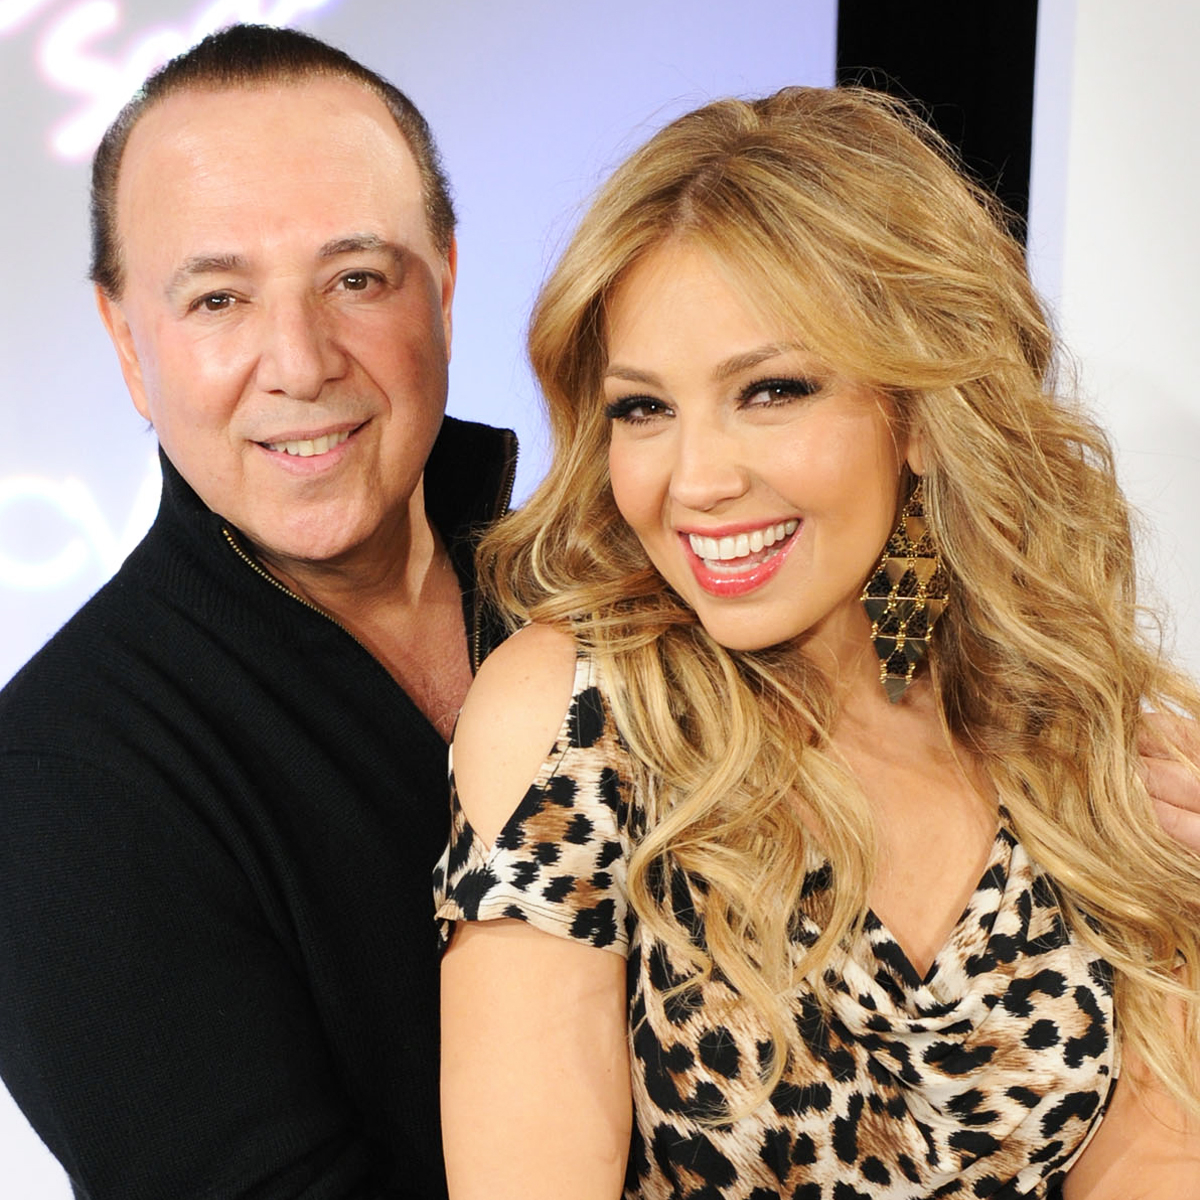 You'll Never Believe Which Iconic Couple Set Thalía Up With Tommy Mottola